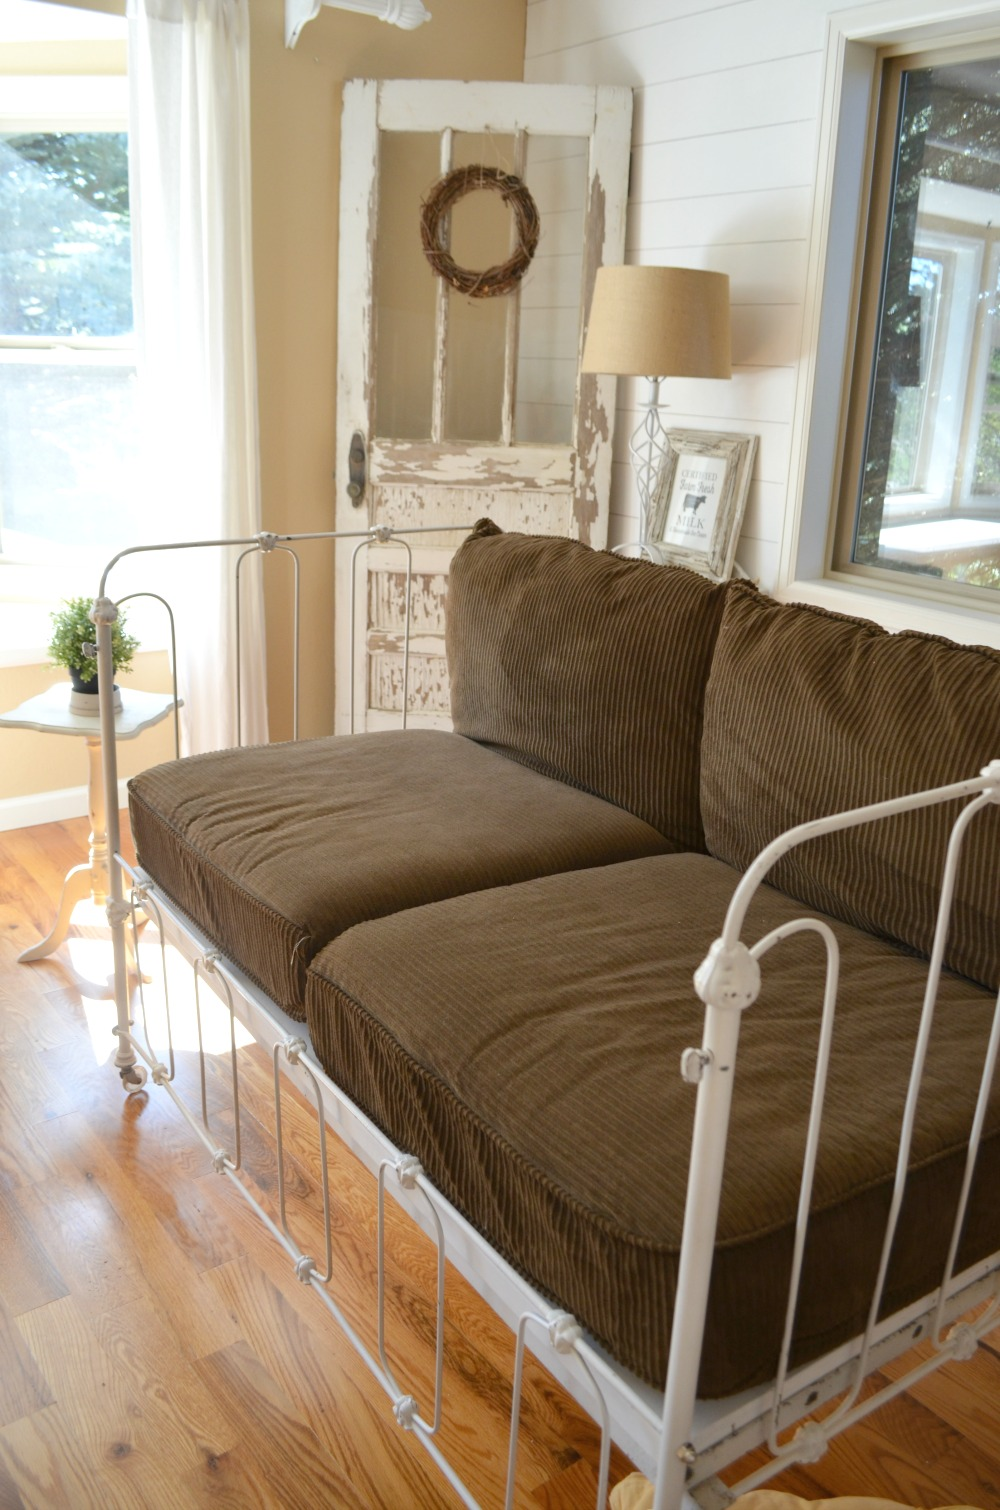 Vintage Crib Turned Couch with Cushions